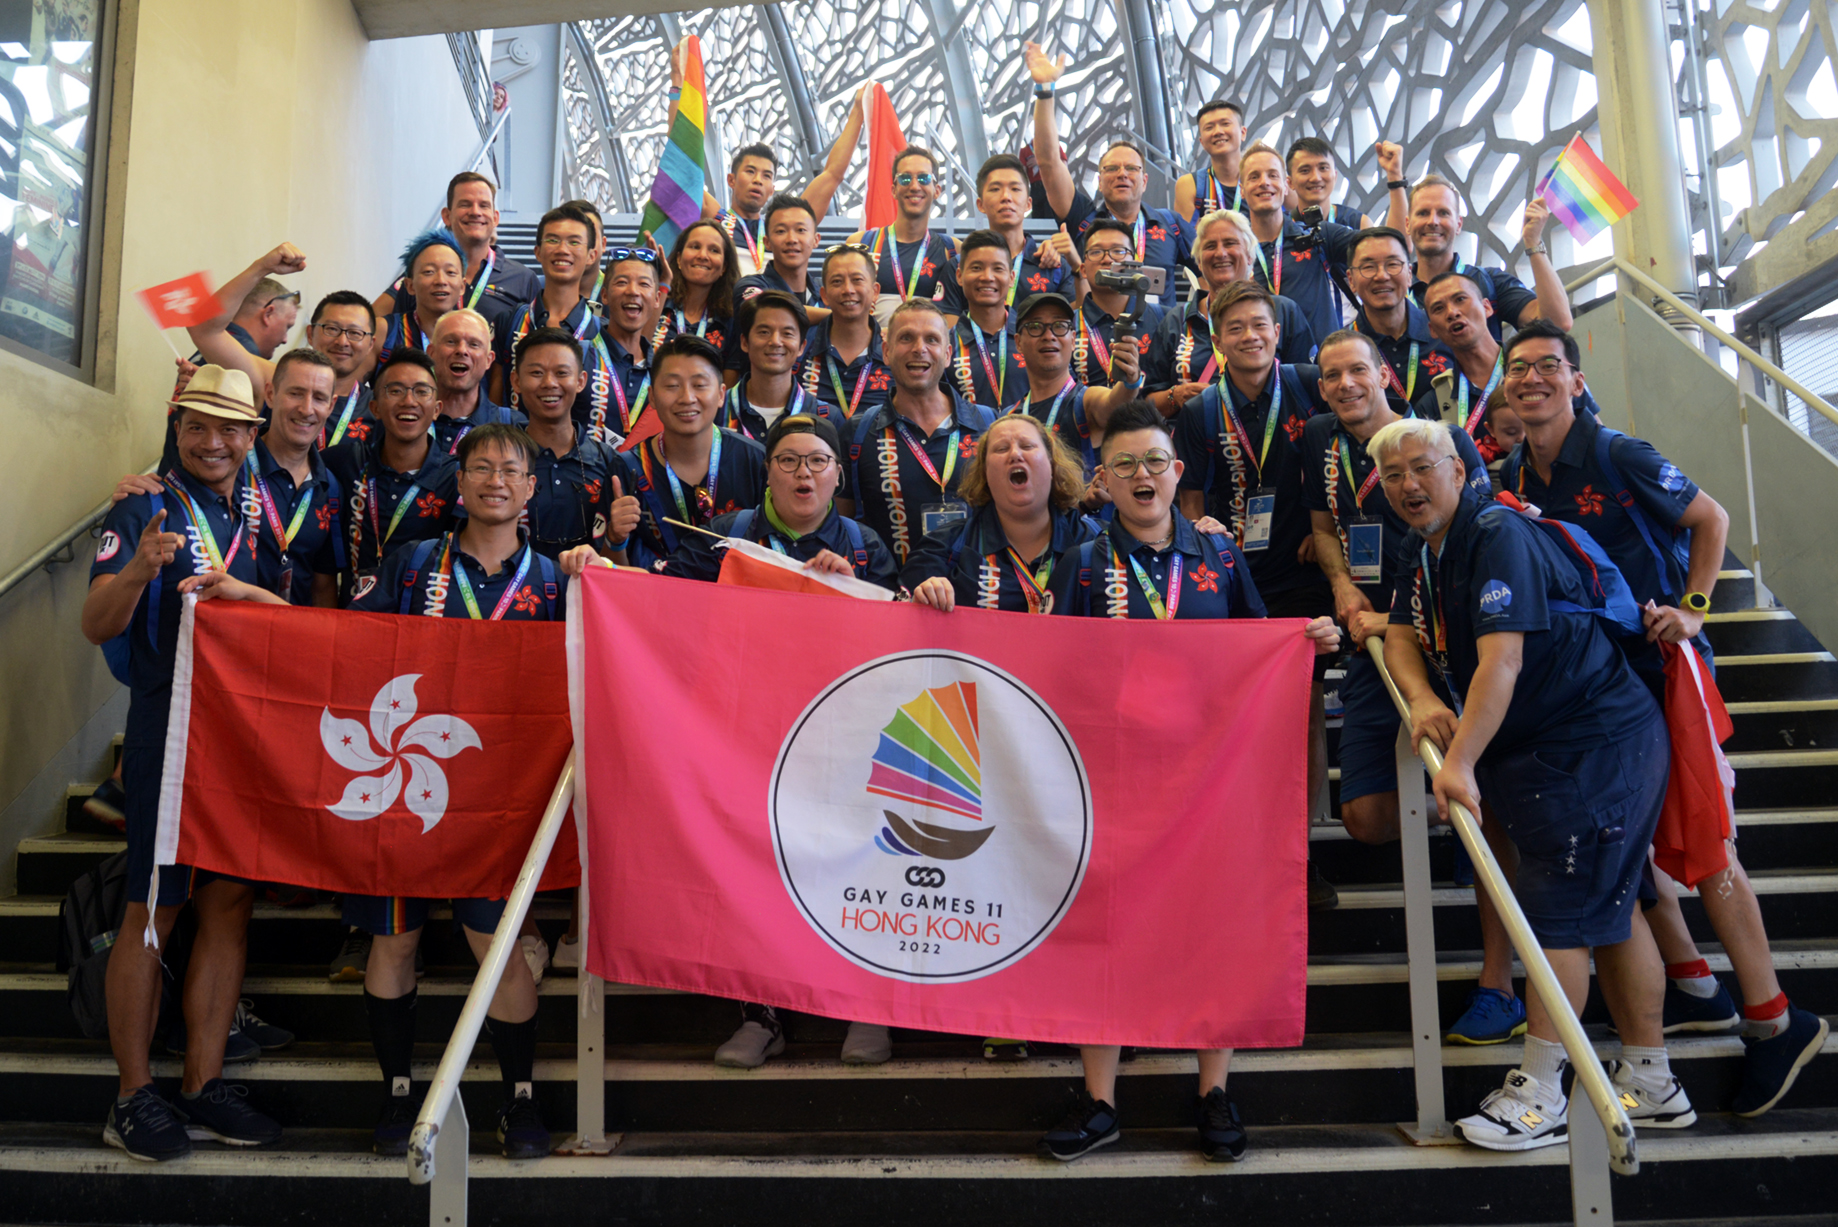 In Conversation With Natalie Truong Of Gay Games